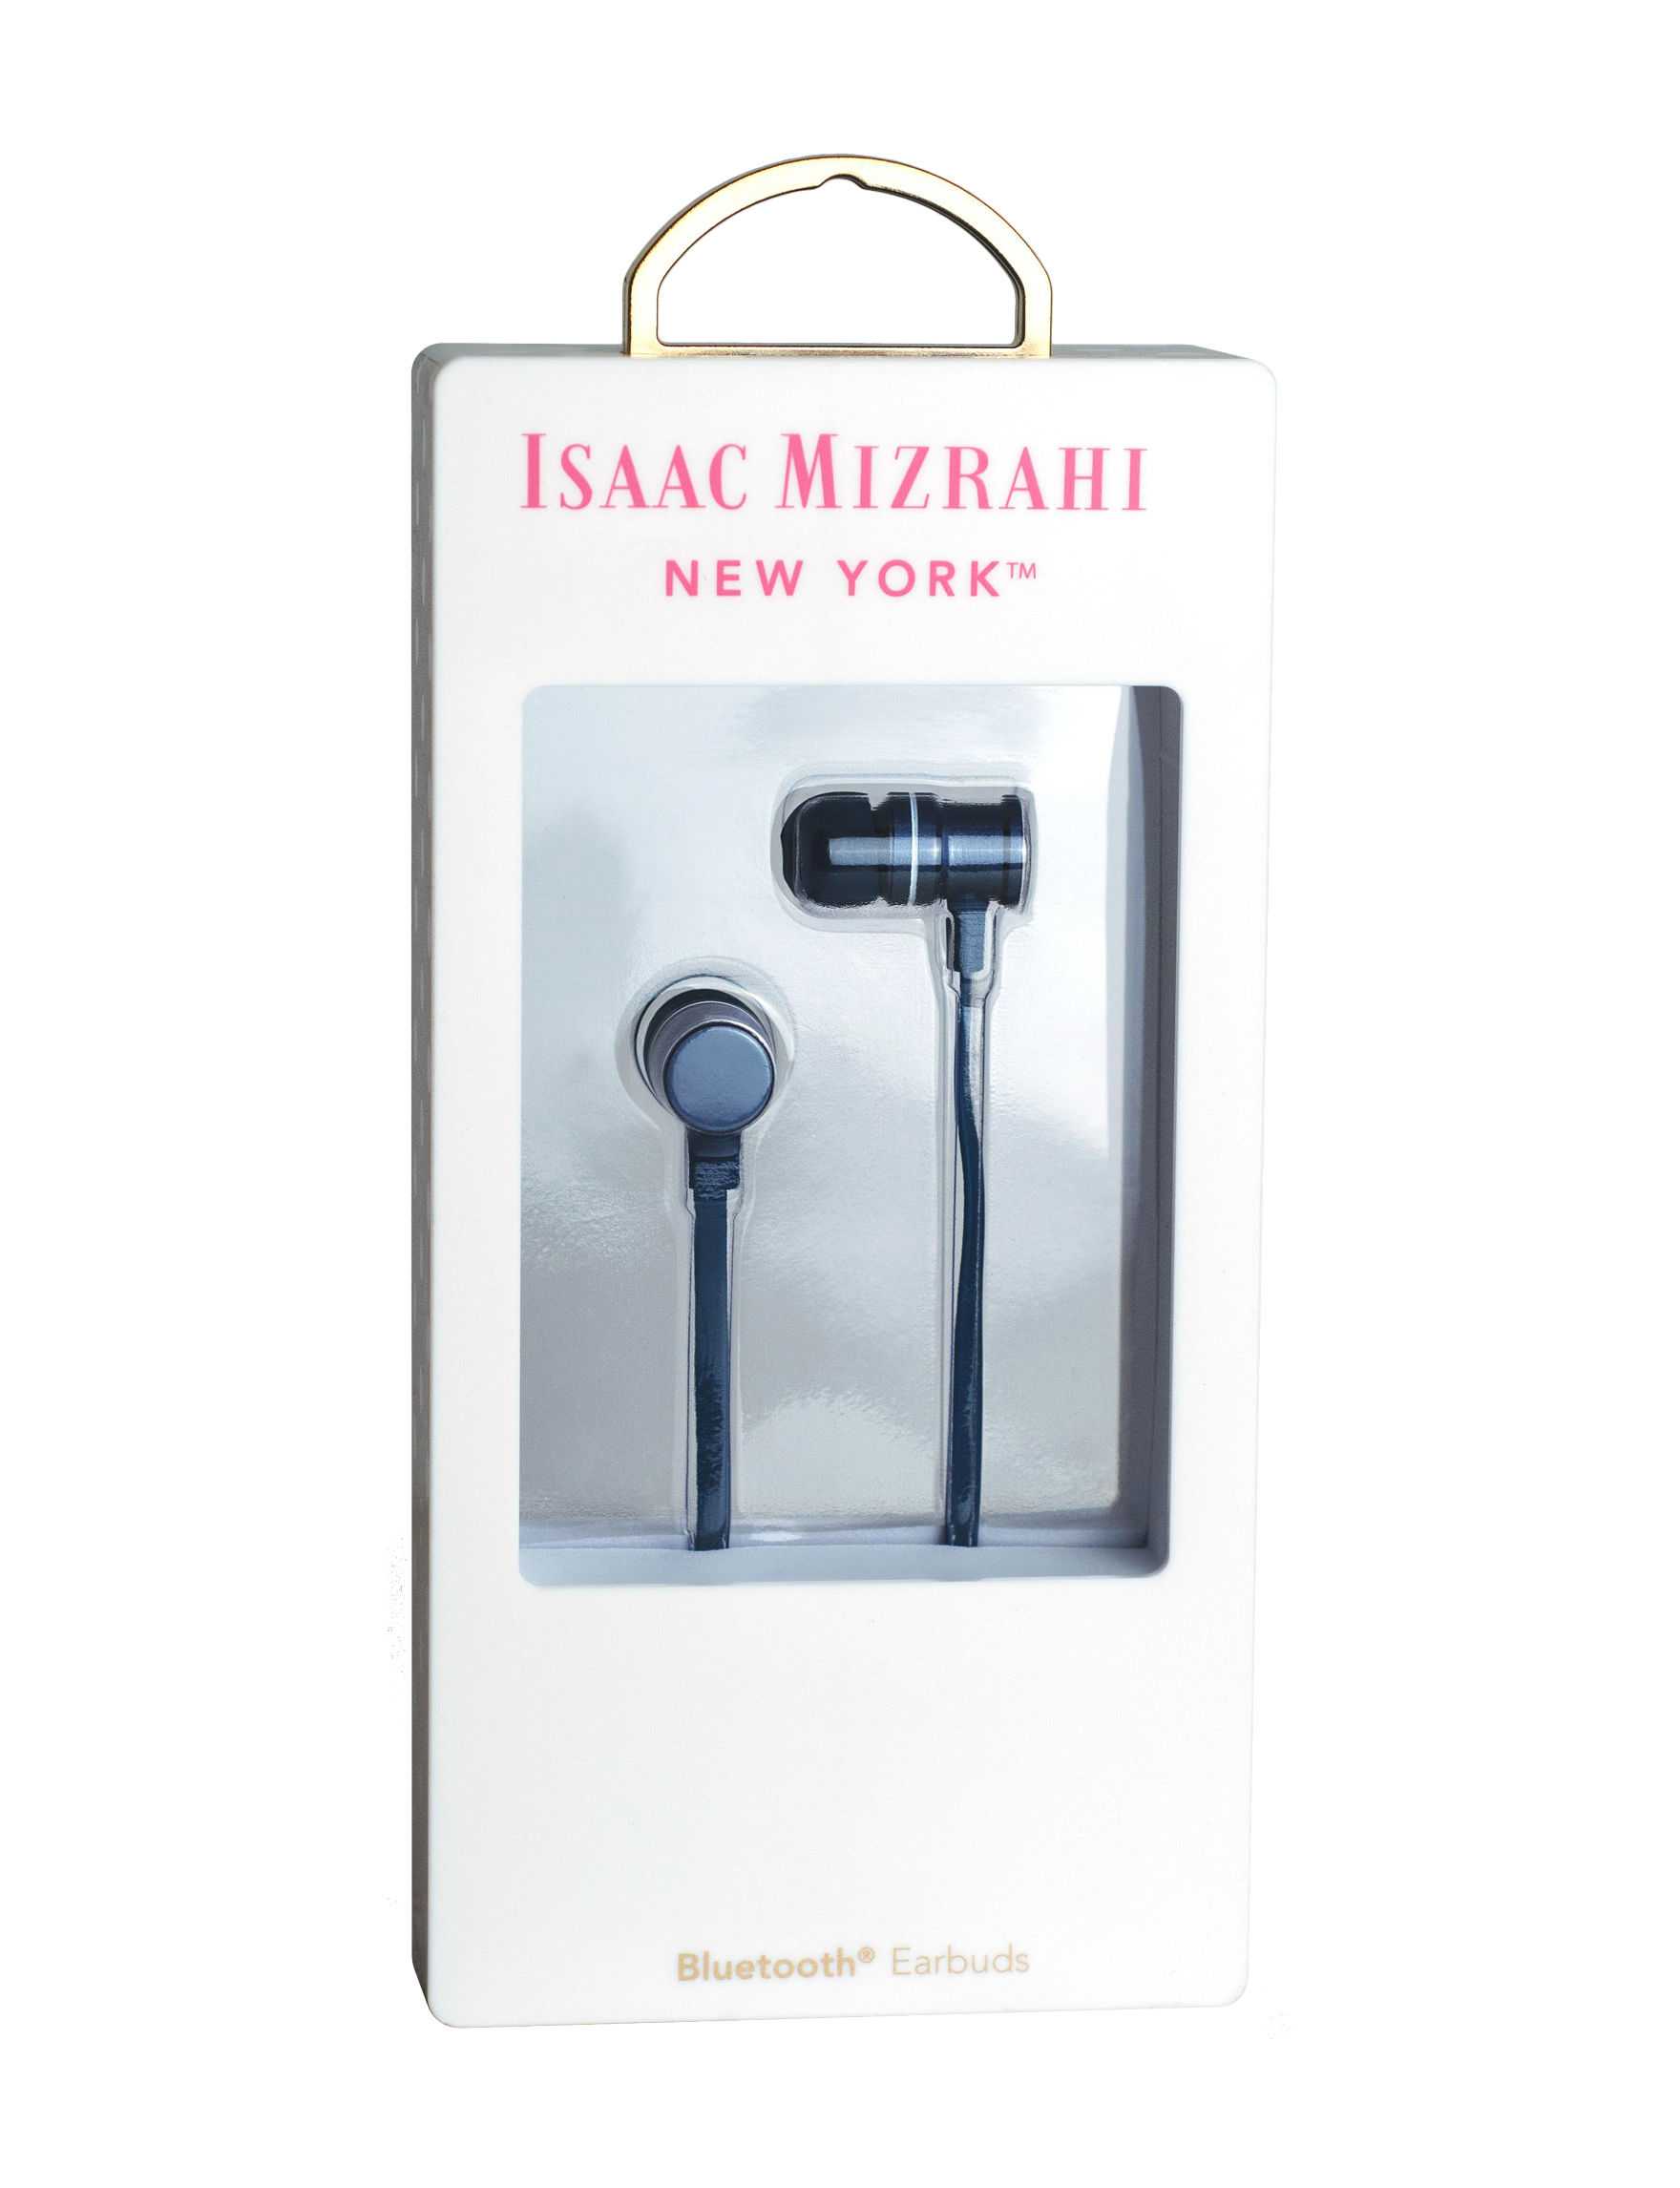 Isaac Mizrahi Blue Headphones Home & Portable Audio Tech Accessories